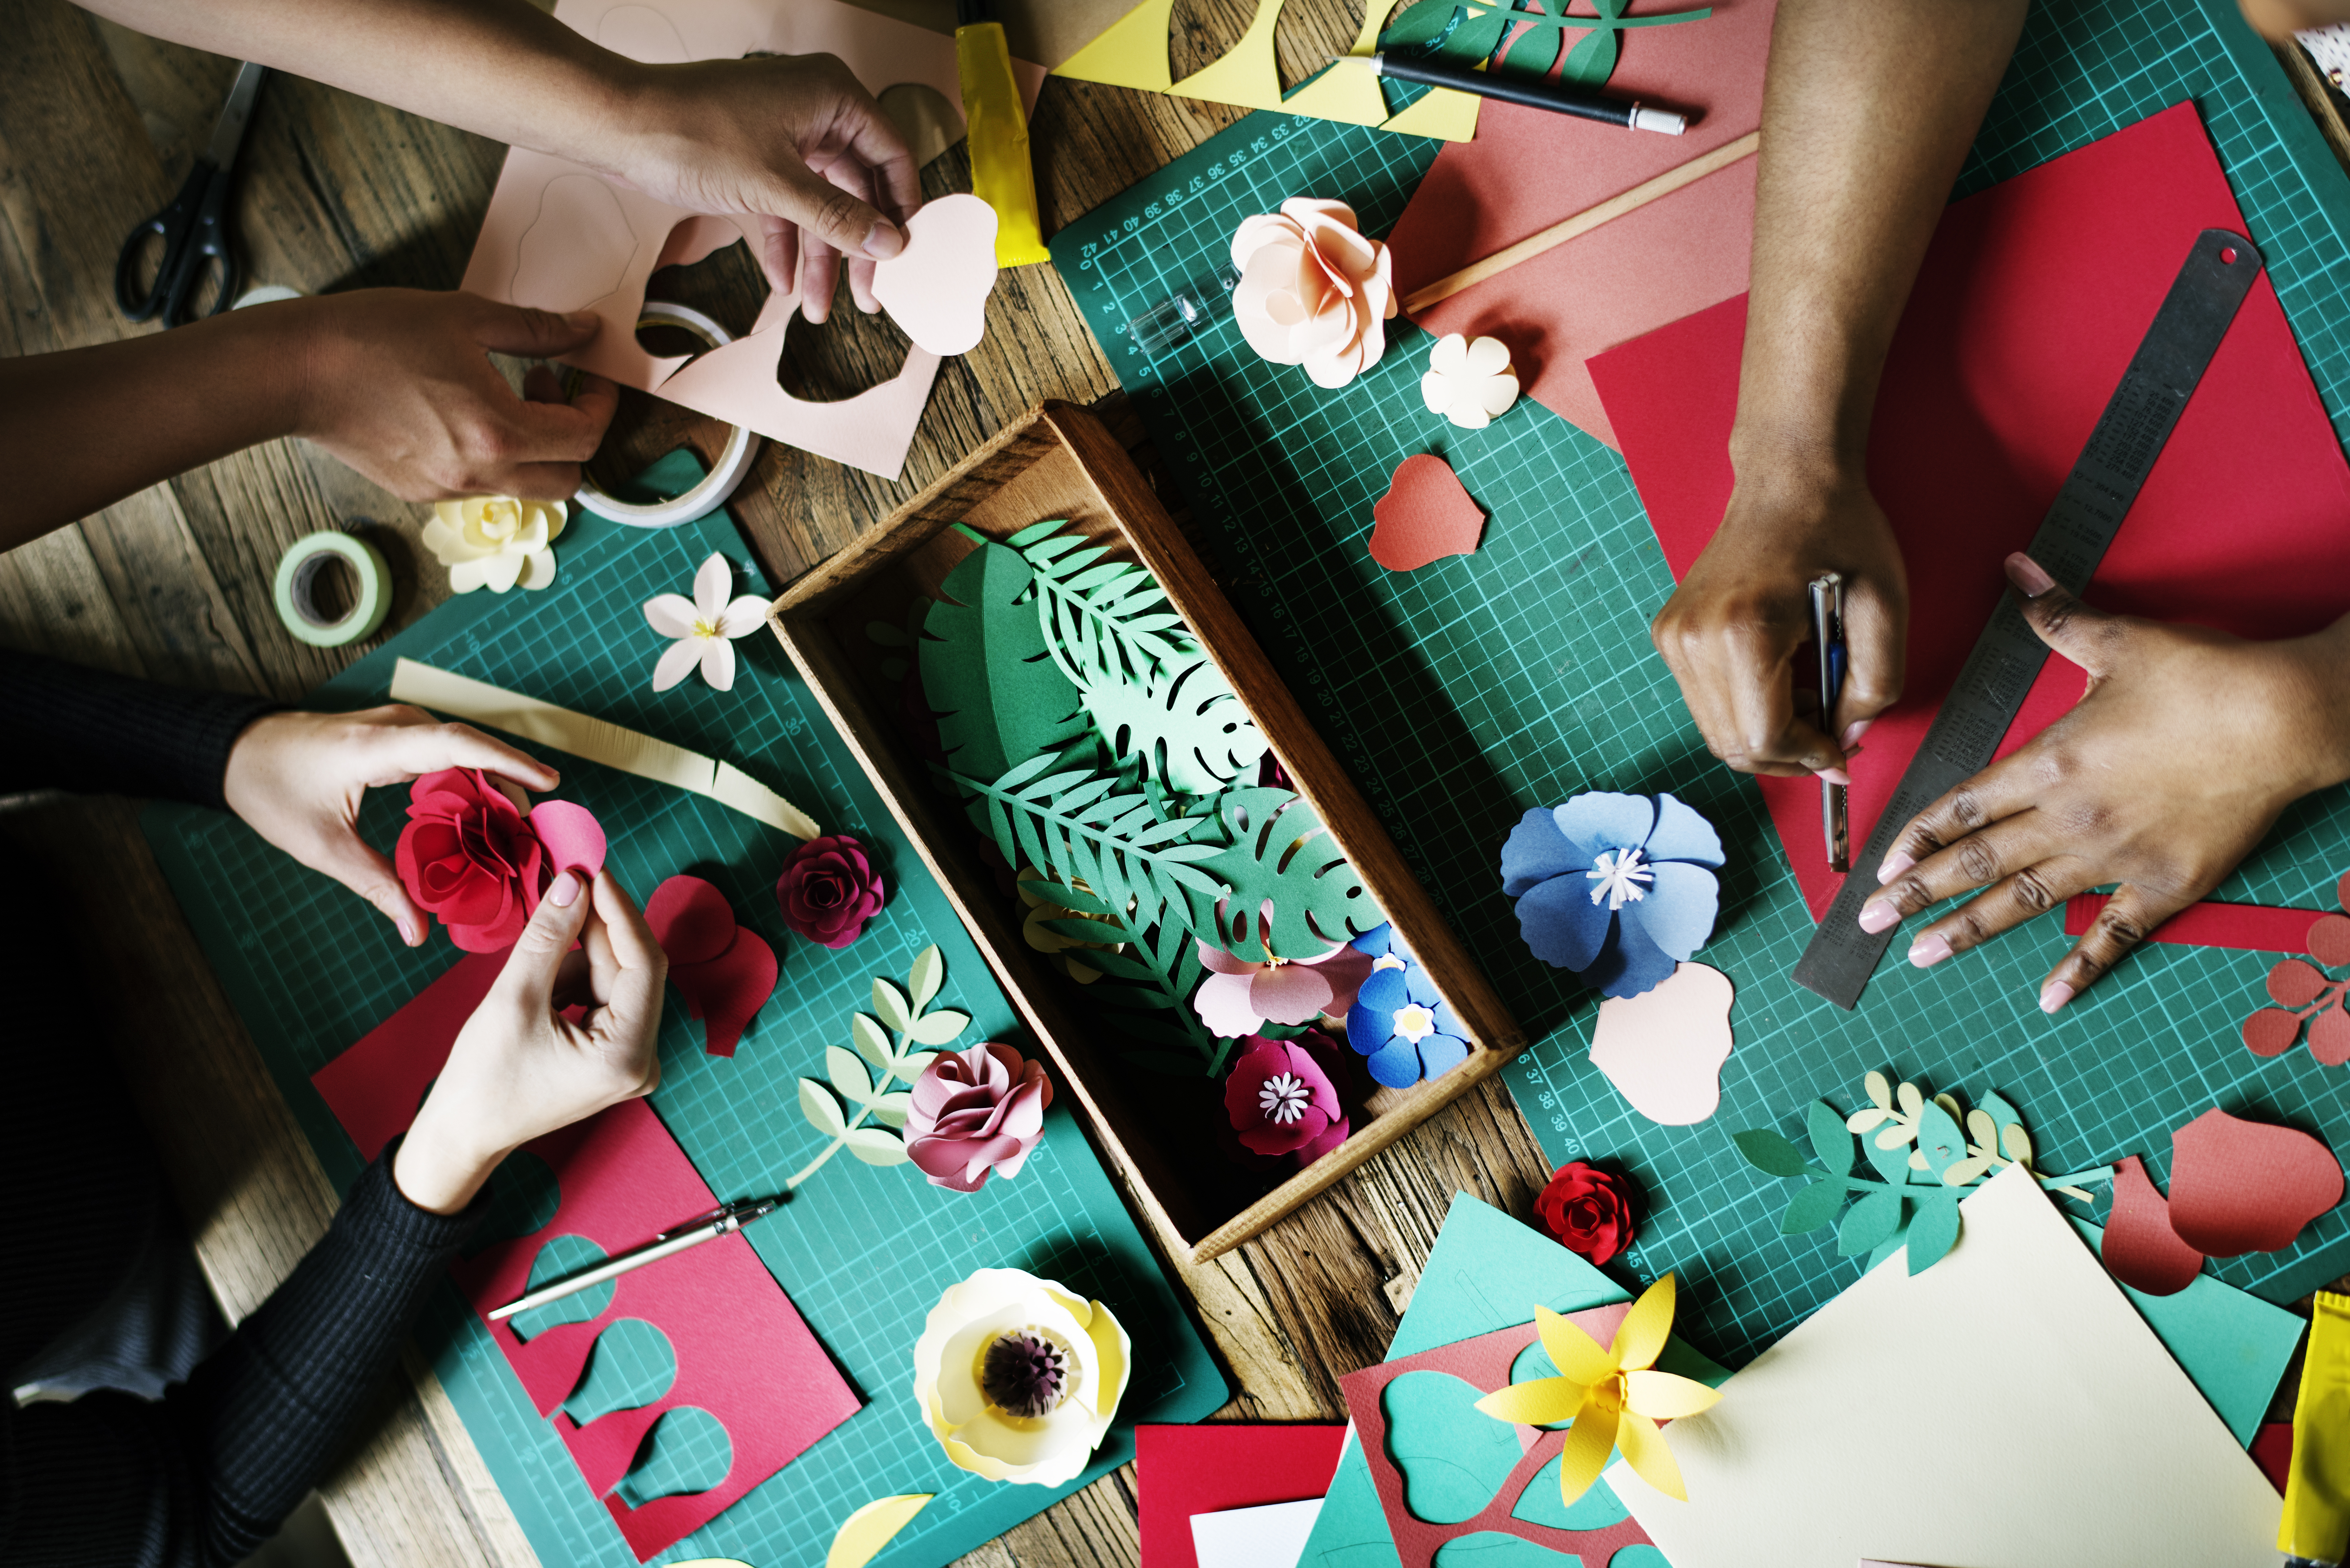 Start Crafting Today With These Simple Tips - Arts & Crafts for You